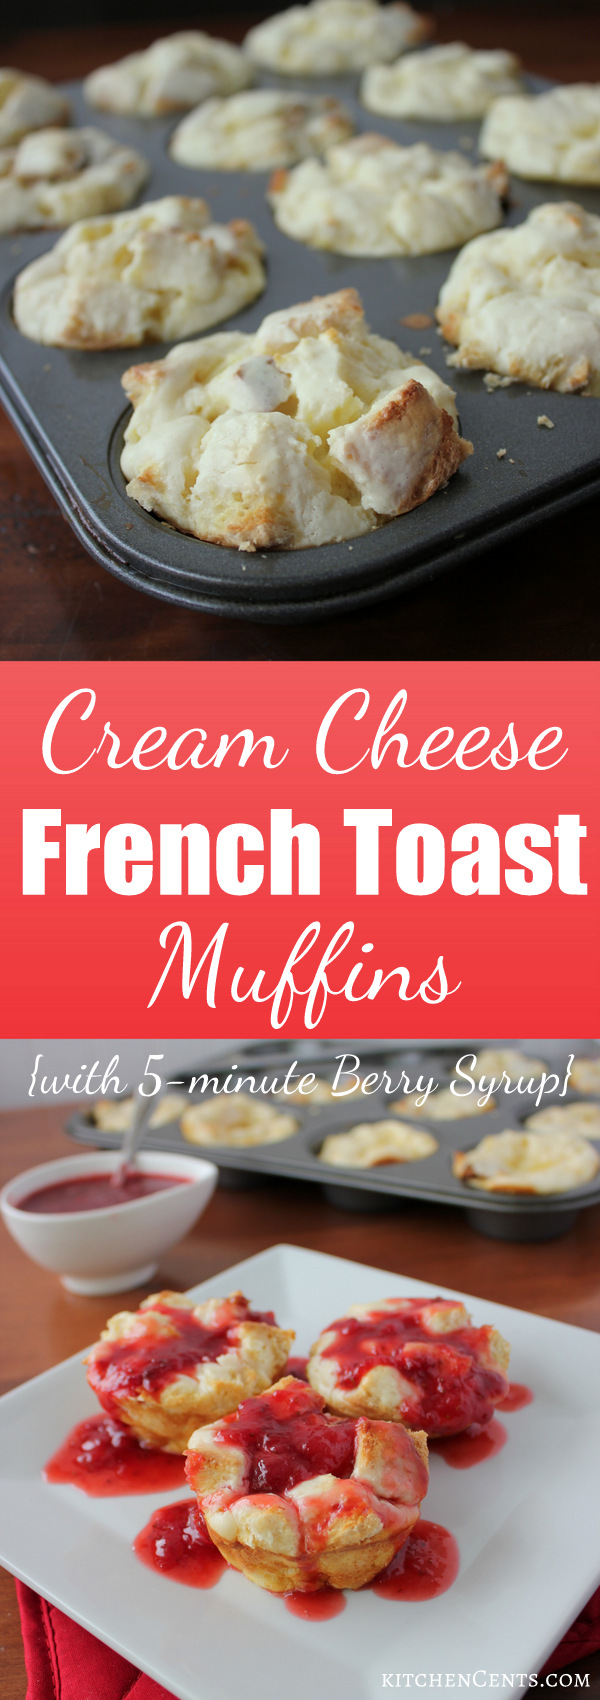 Cream Cheese French Toast Muffins | KitchenCents.com